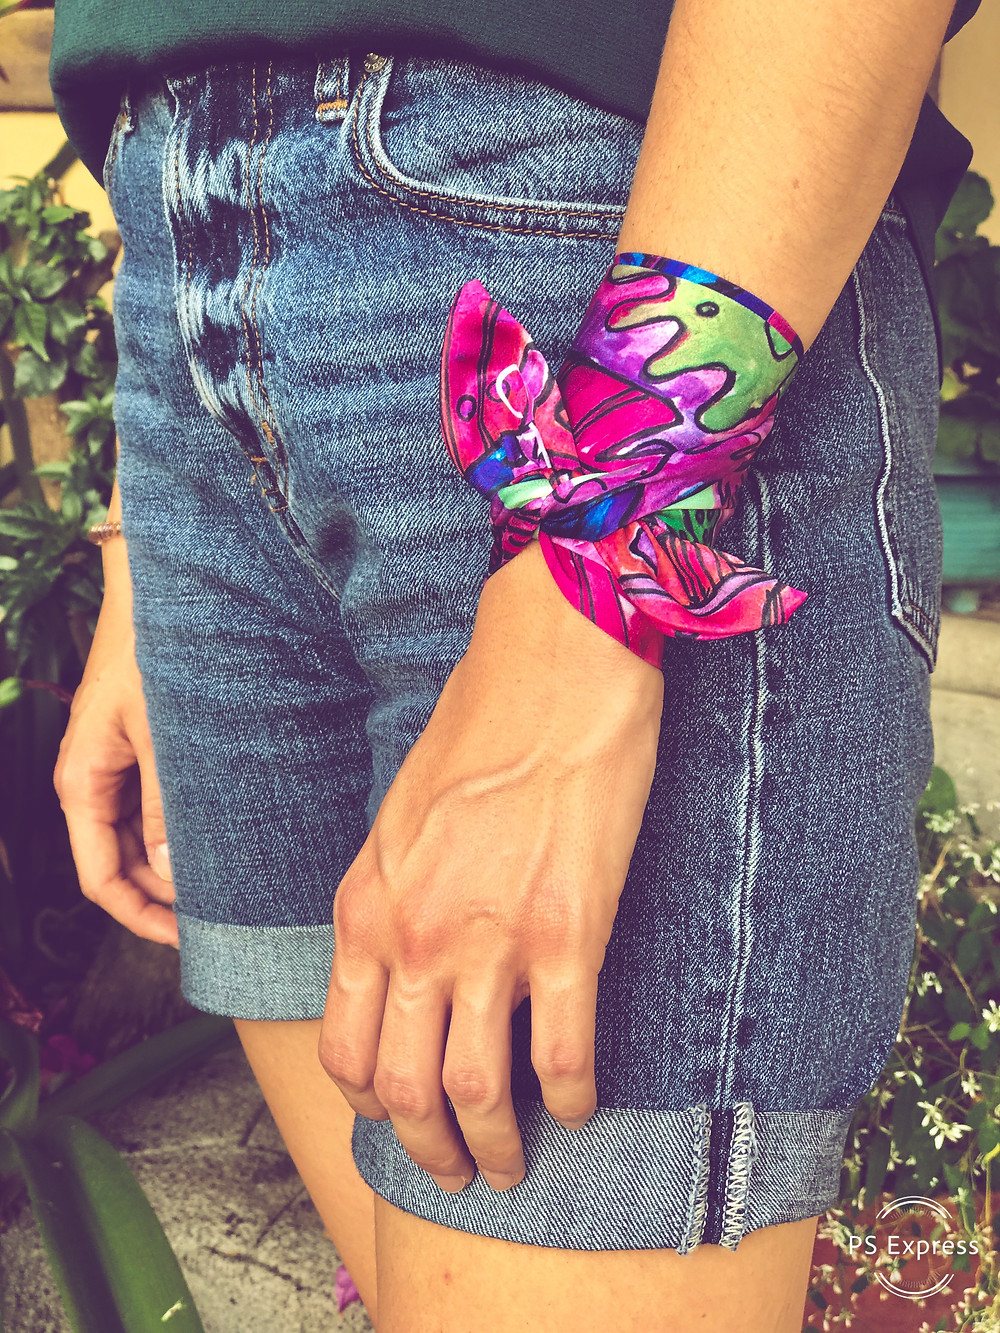 CARMENTA - model wearing wrist ribbon knot tutorial, Costa Rica design and art printed on fabric